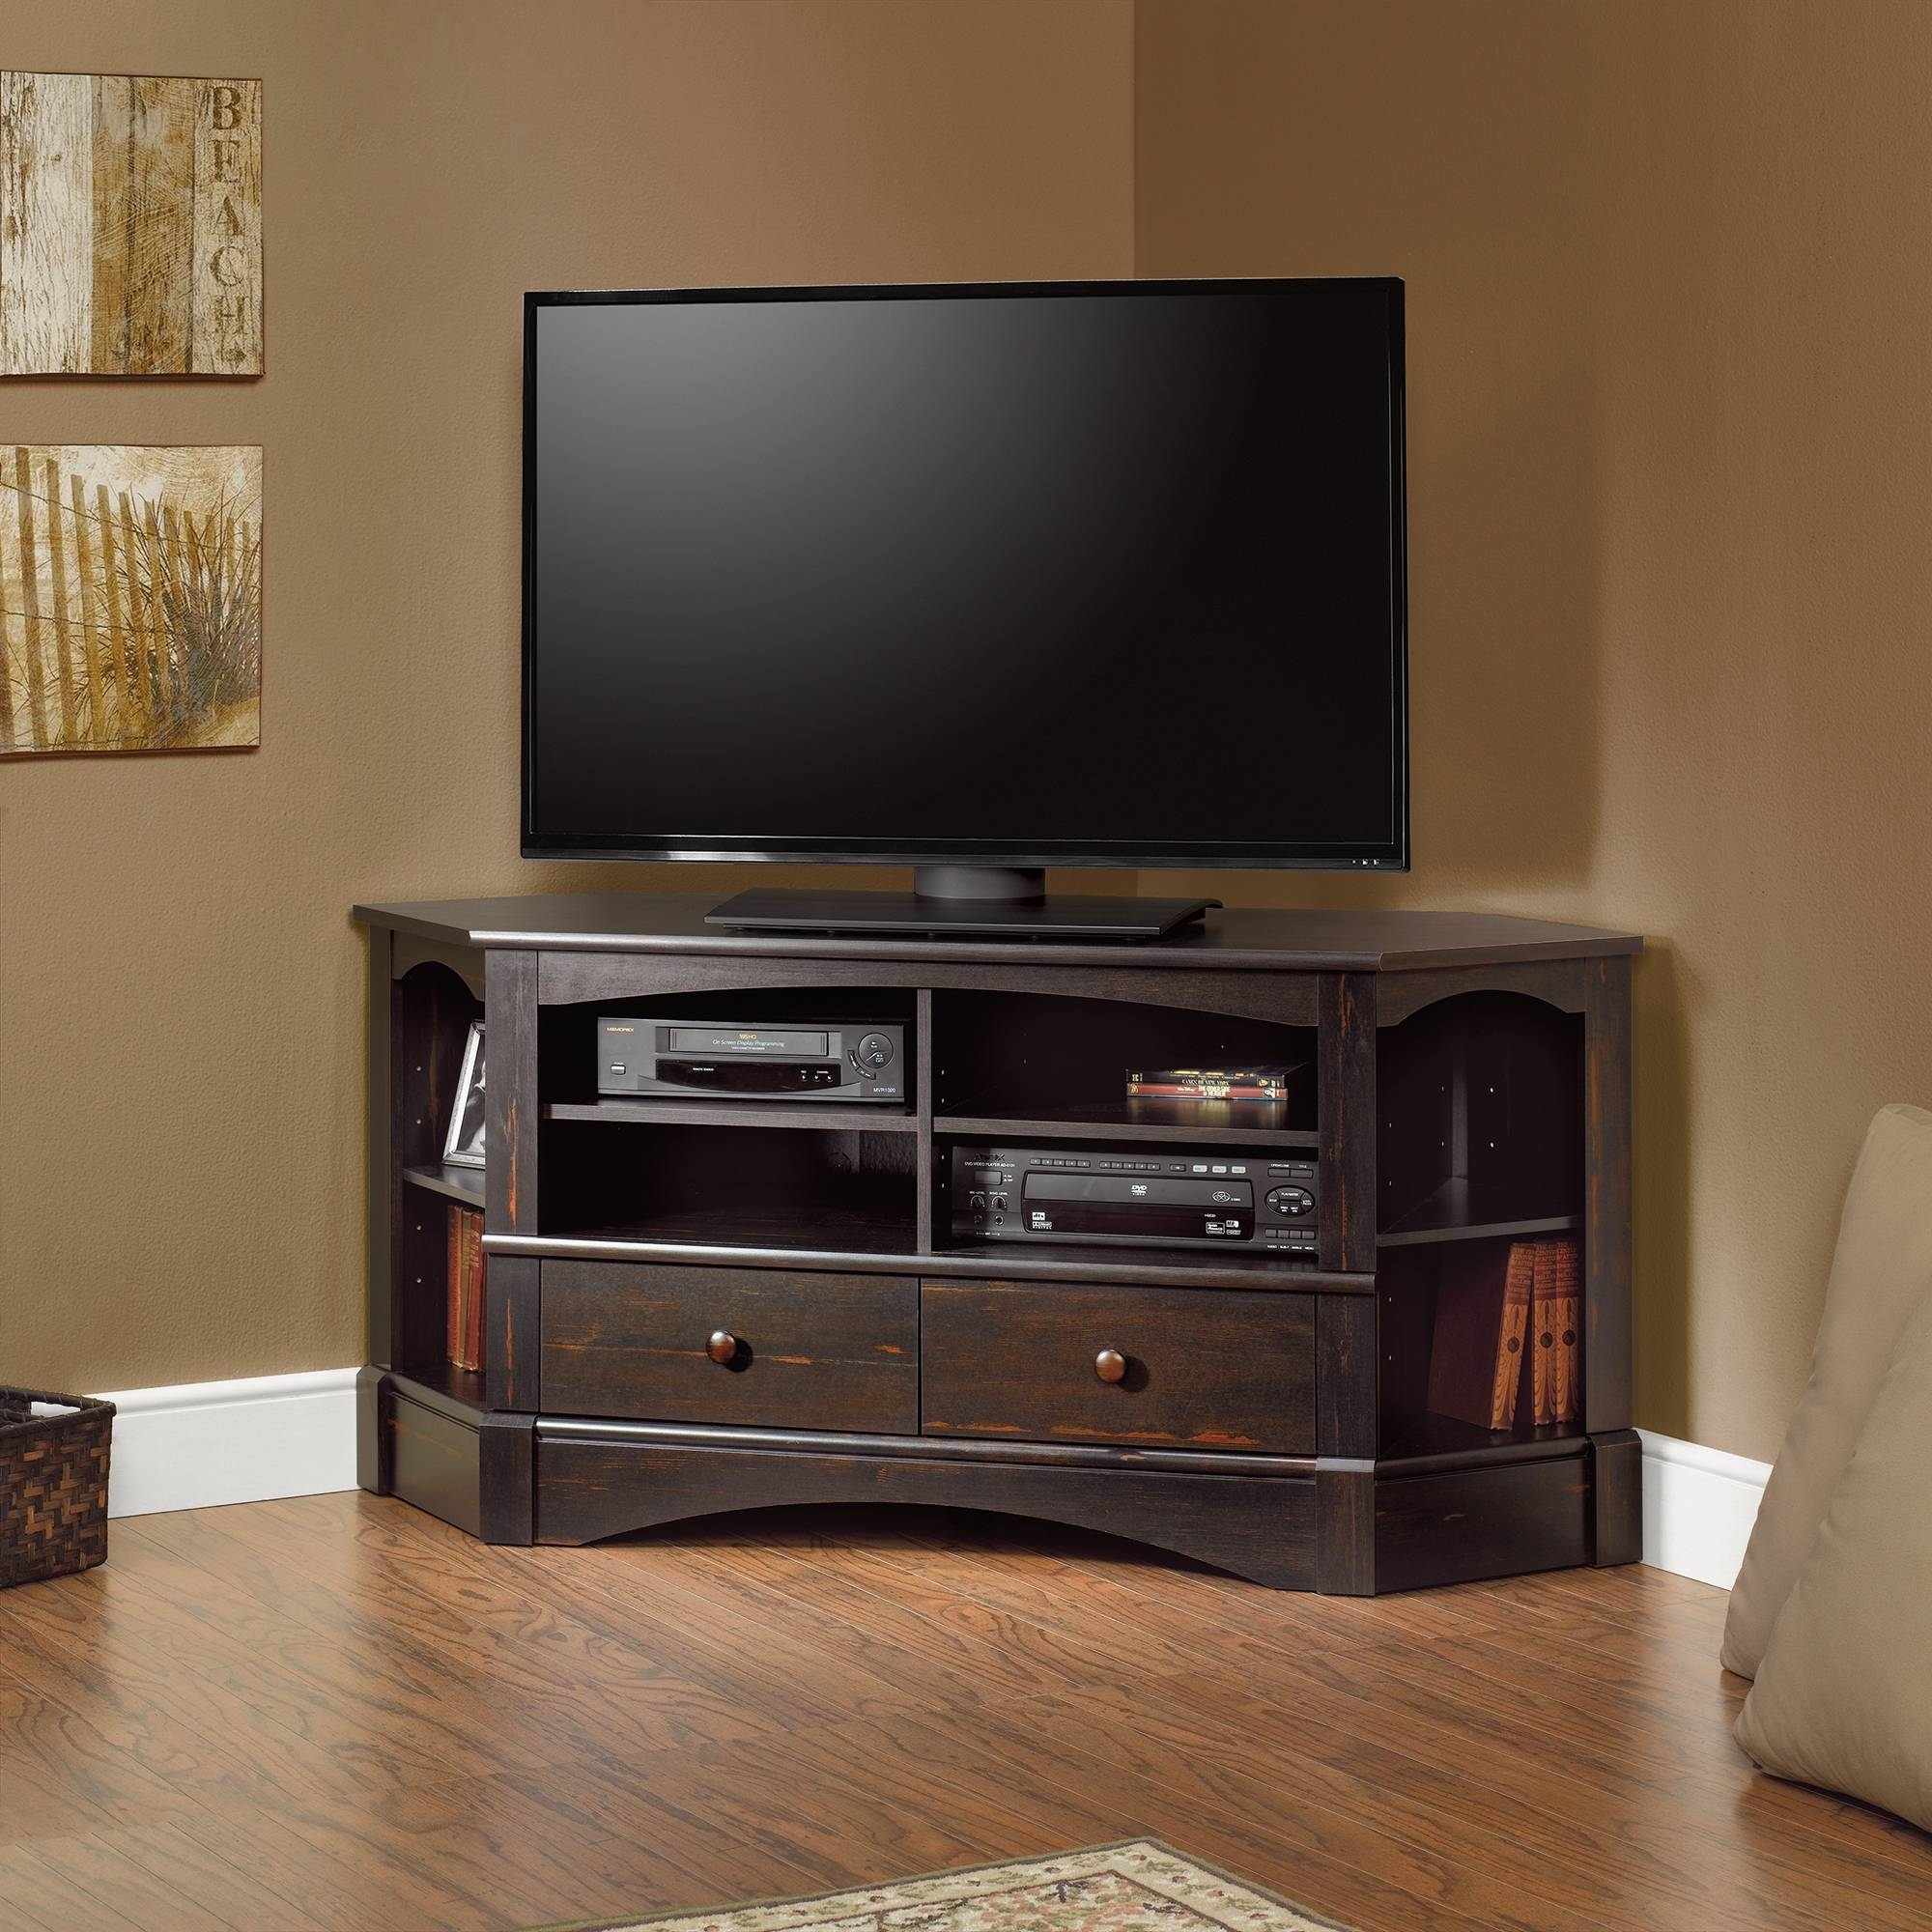 Tall Tv Stand For Bedroom Gallery Also Corner Picture Traditional throughout Tall Tv Cabinets Corner Unit (Image 9 of 15)